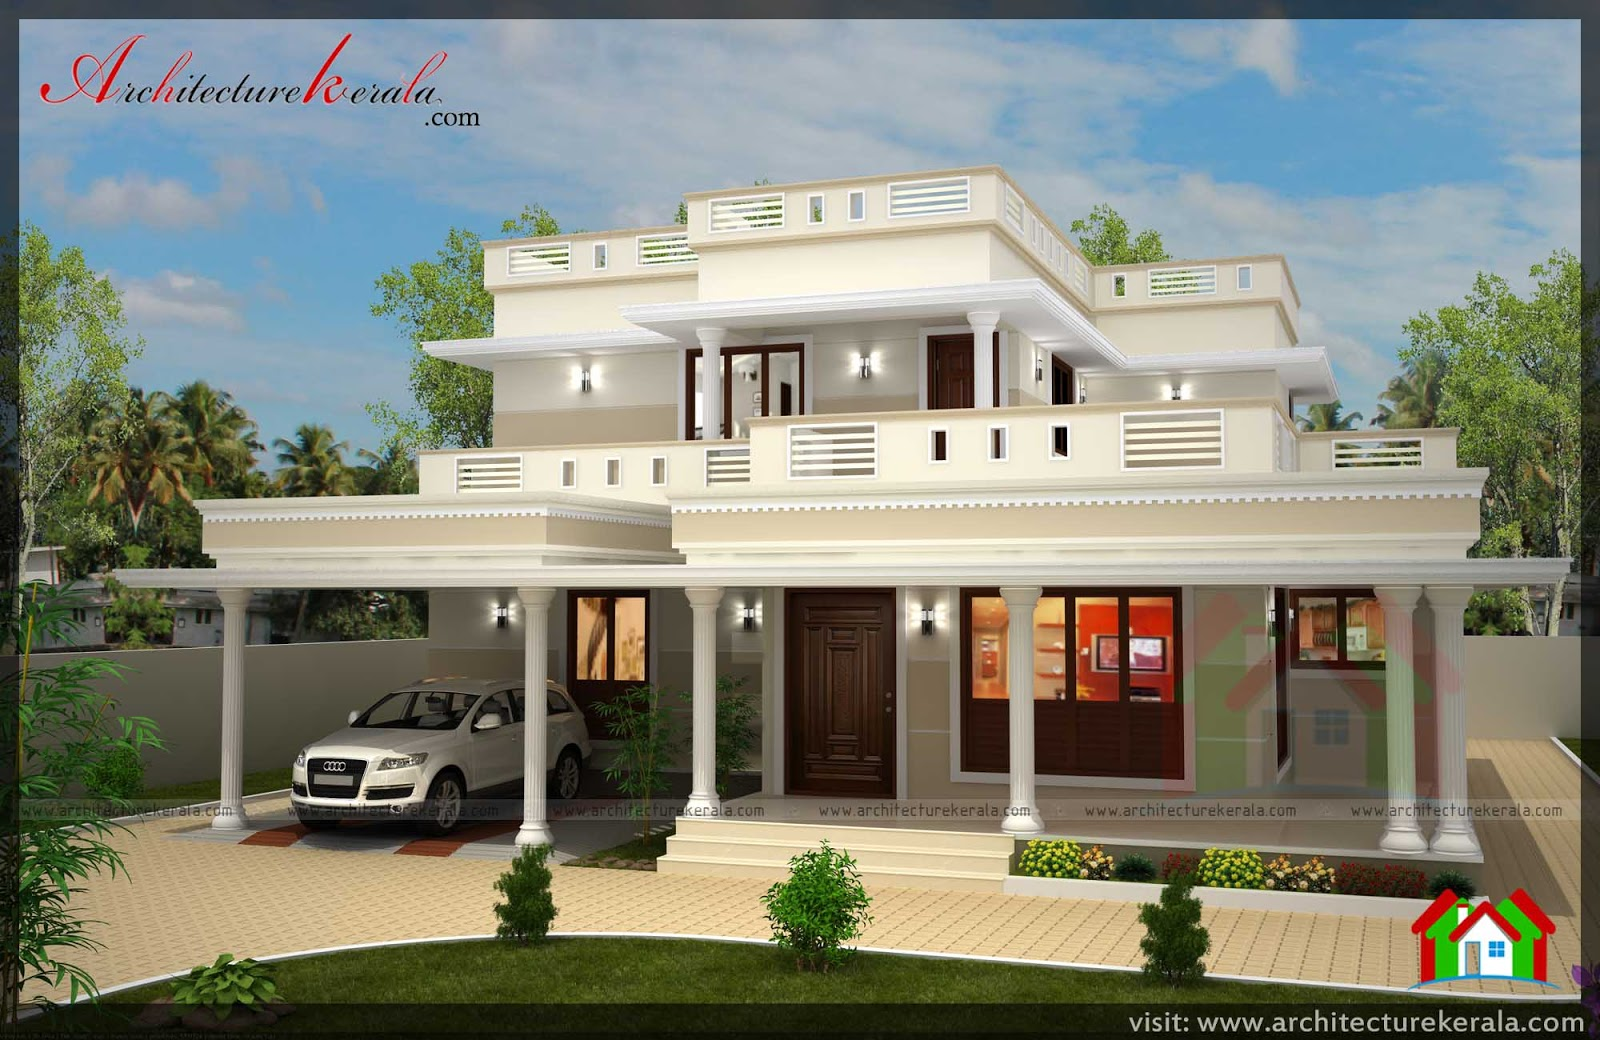 Stunning 4 bedroom kerala home design with pooja room free for House room design